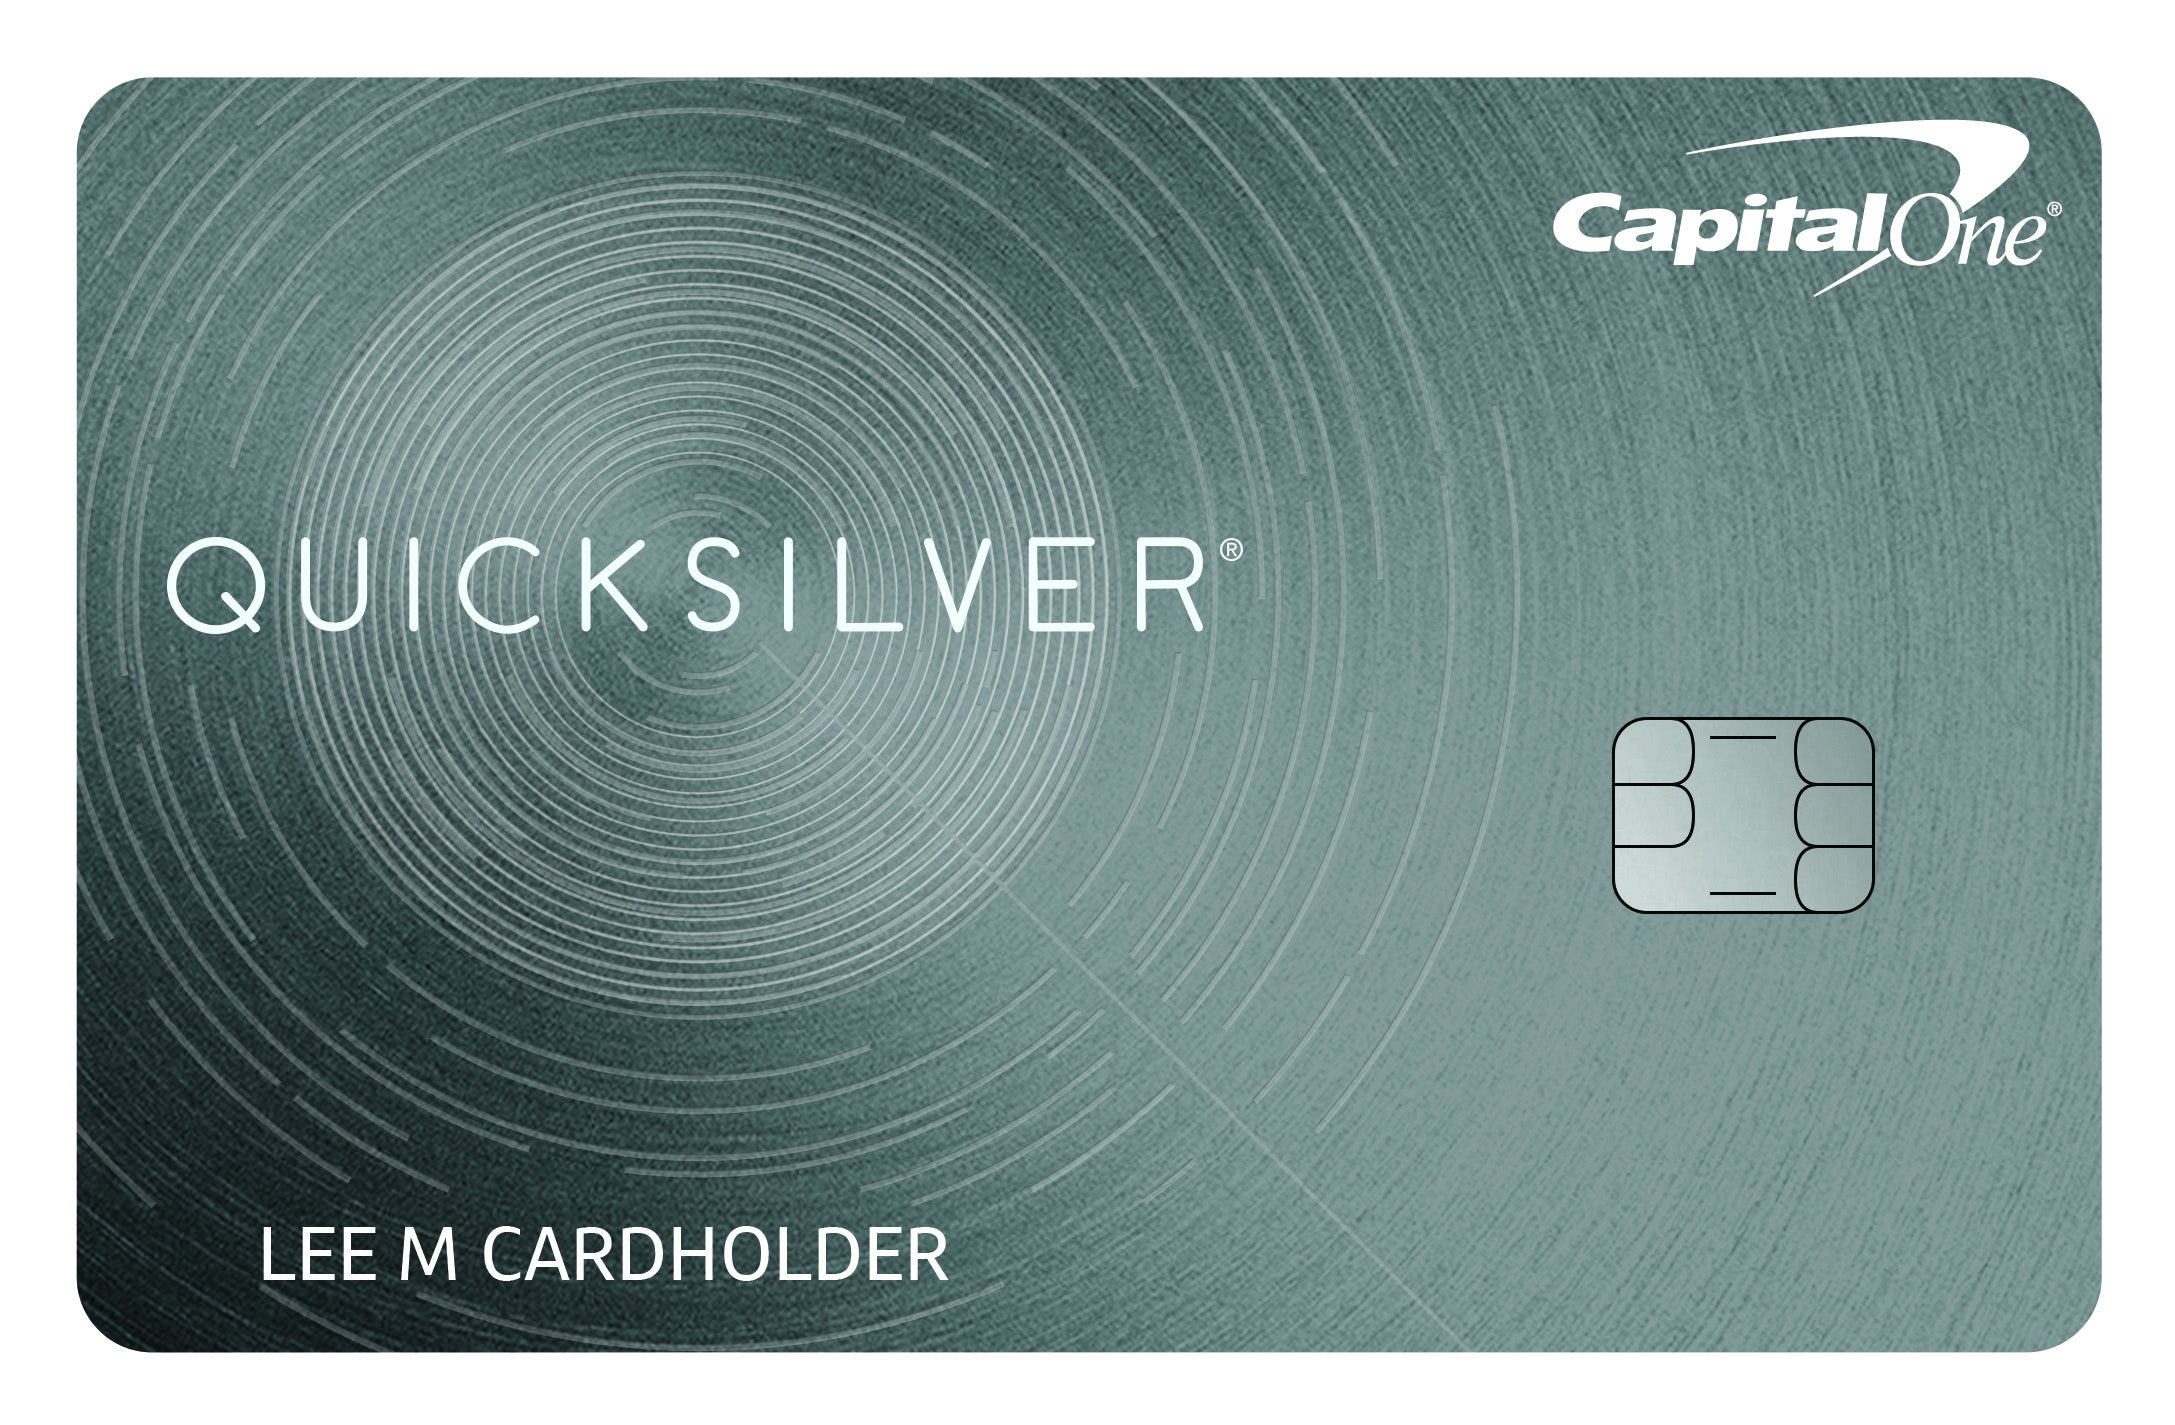 50% off Spotify Subscriptions With Capital e Quicksilver